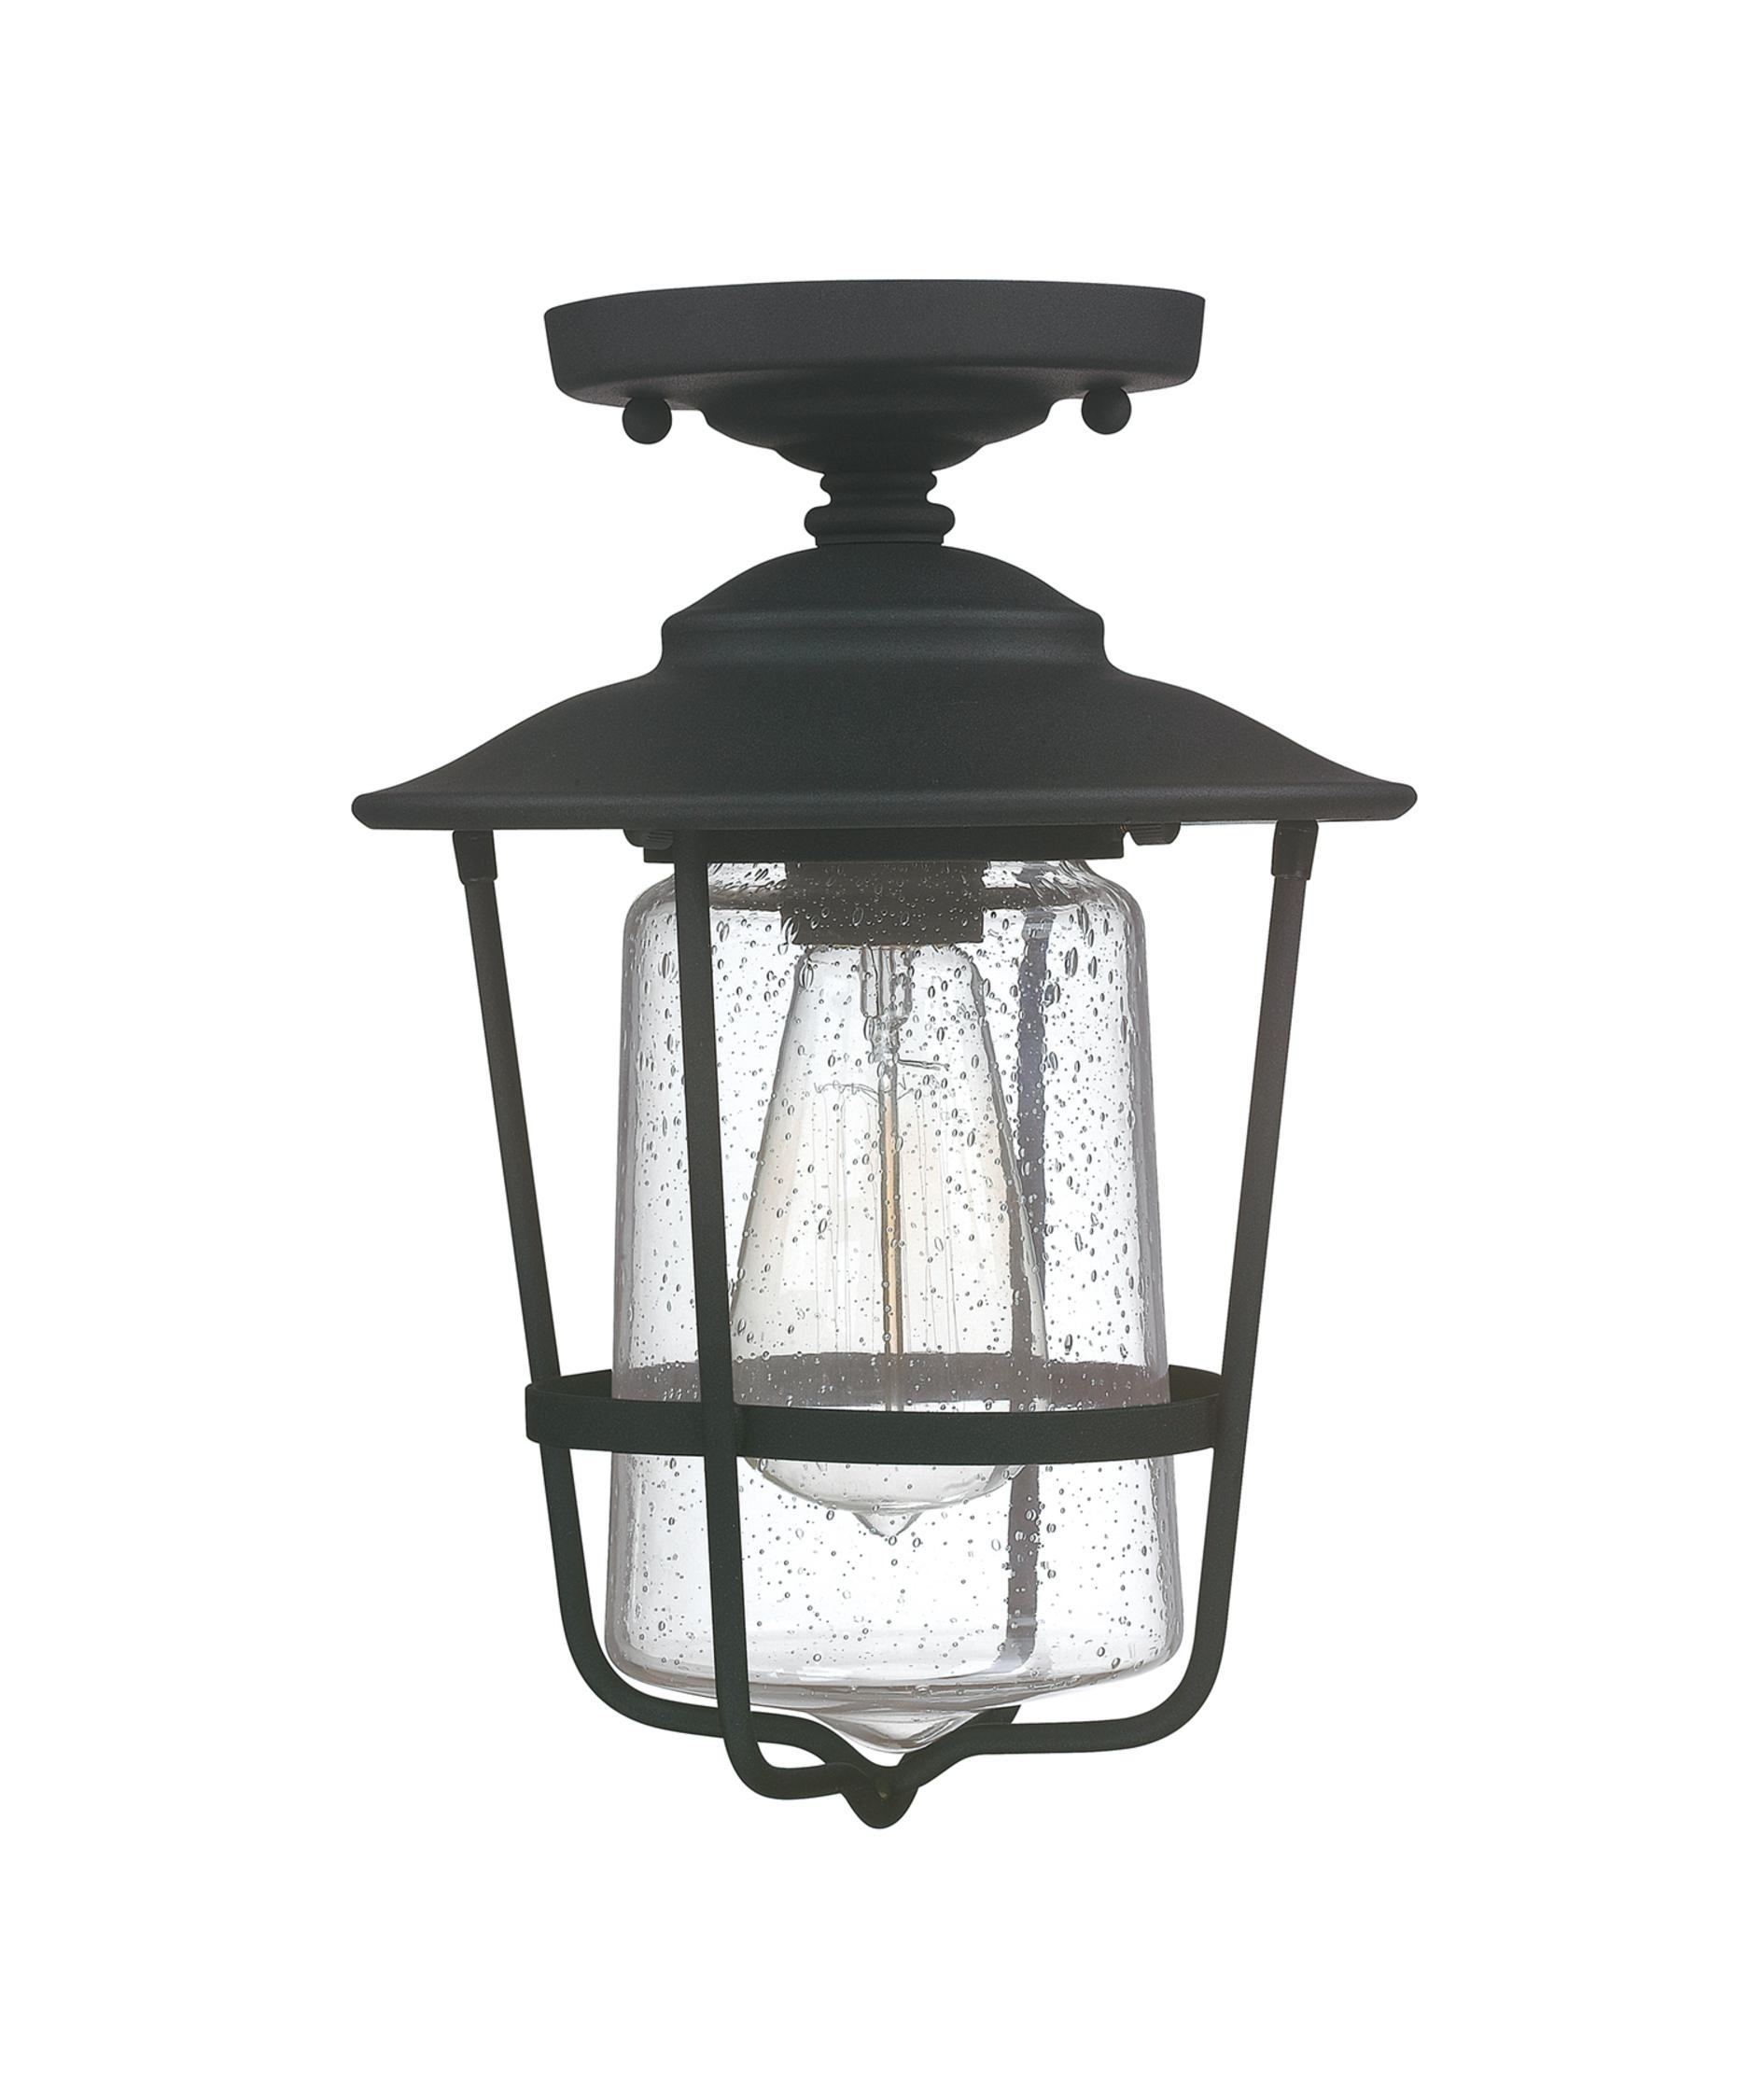 Lighting Design Ideas: Hanging Porch Flush Mount Outdoor Light Pertaining To Outdoor Ceiling Mount Porch Lights (#6 of 15)